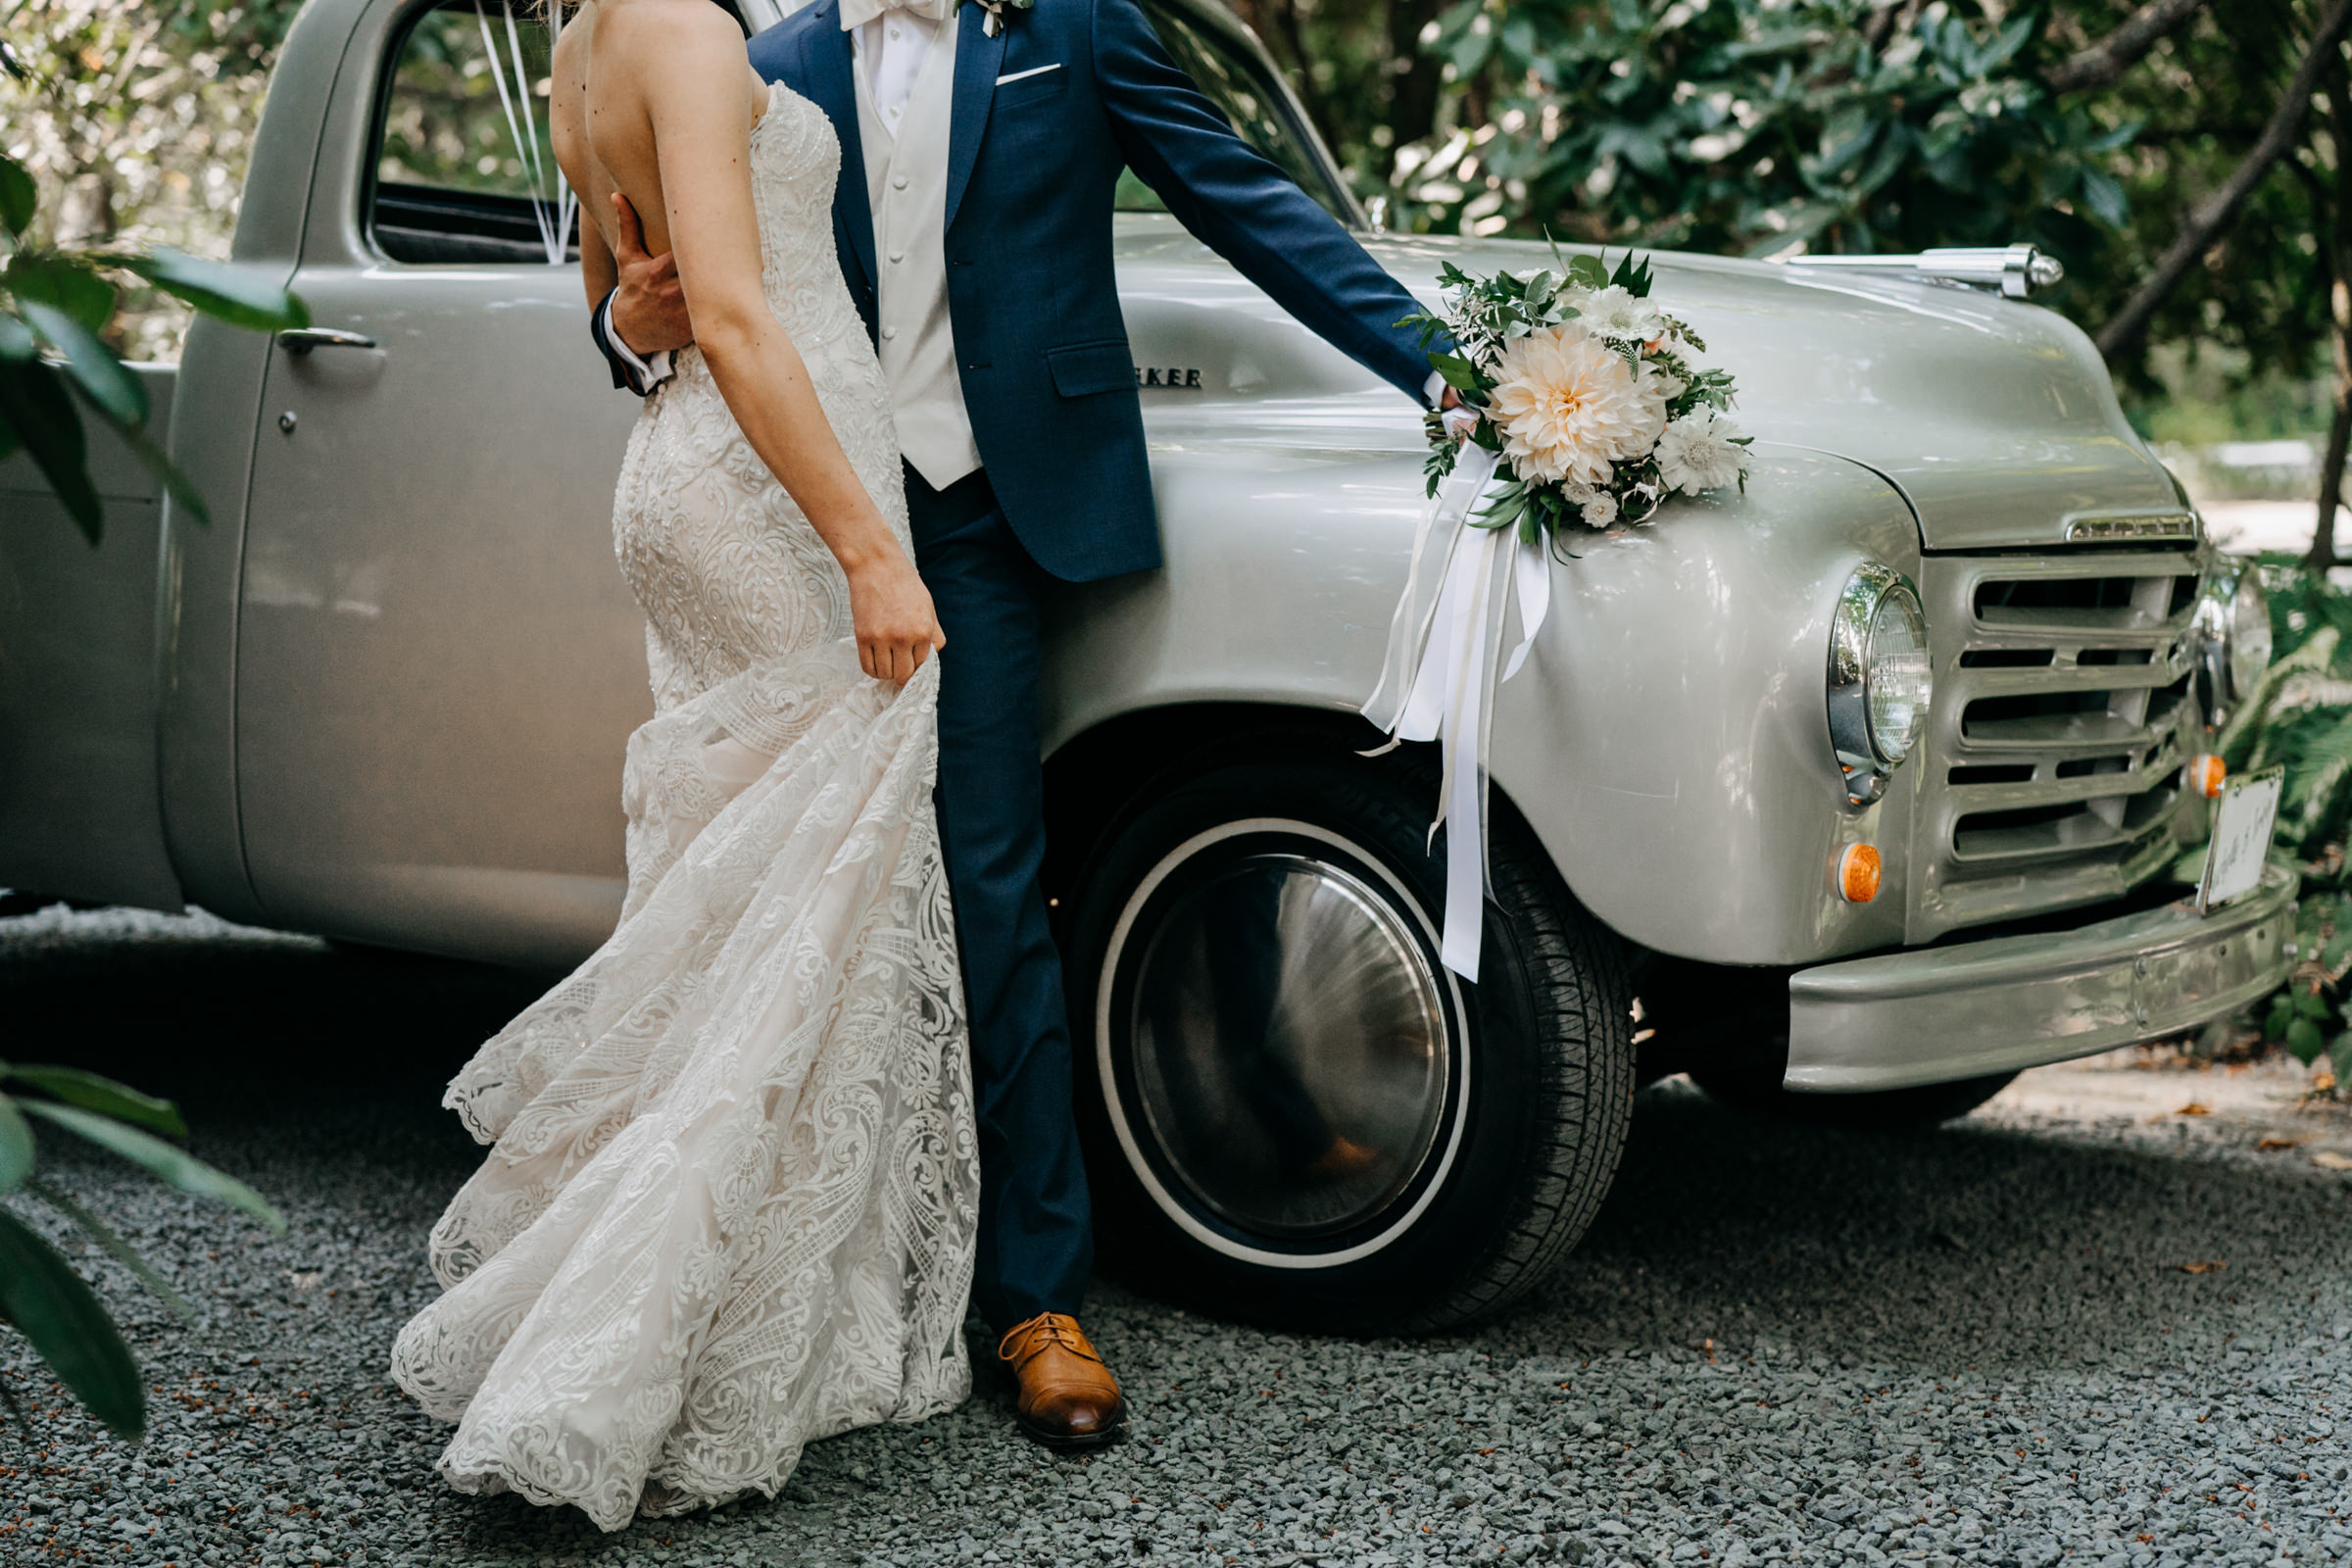 Bride and groom embrace against vintage limo - photo by Sasha Reiko Photography